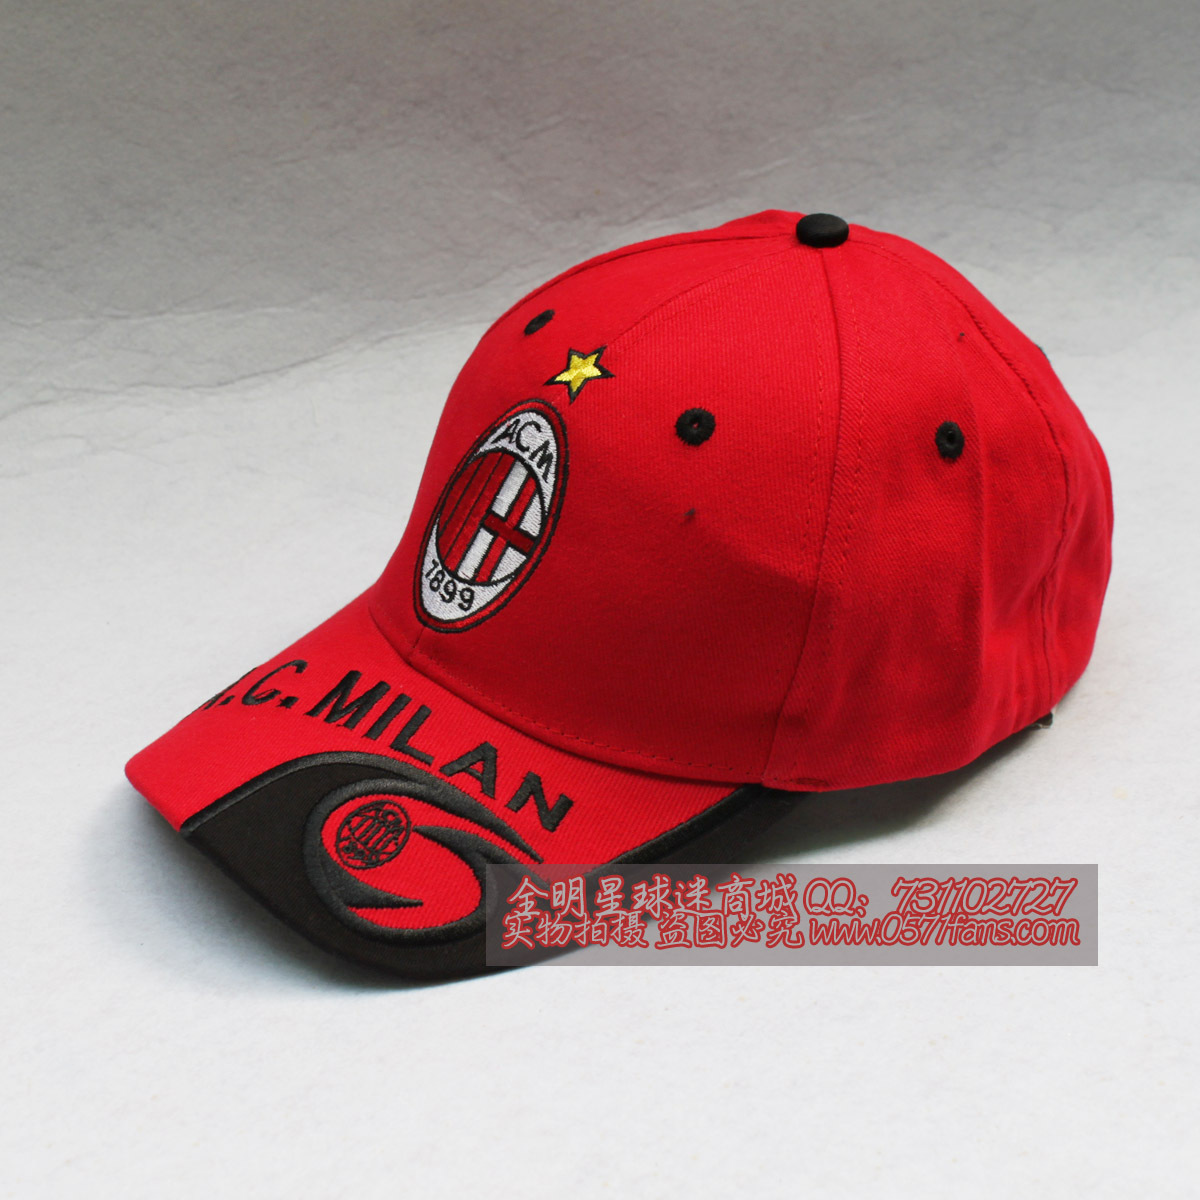 Football team logo embroidery sun hat AC Milan baseball cap football hat  red   black AC Milan club team soccer 6867192d8966